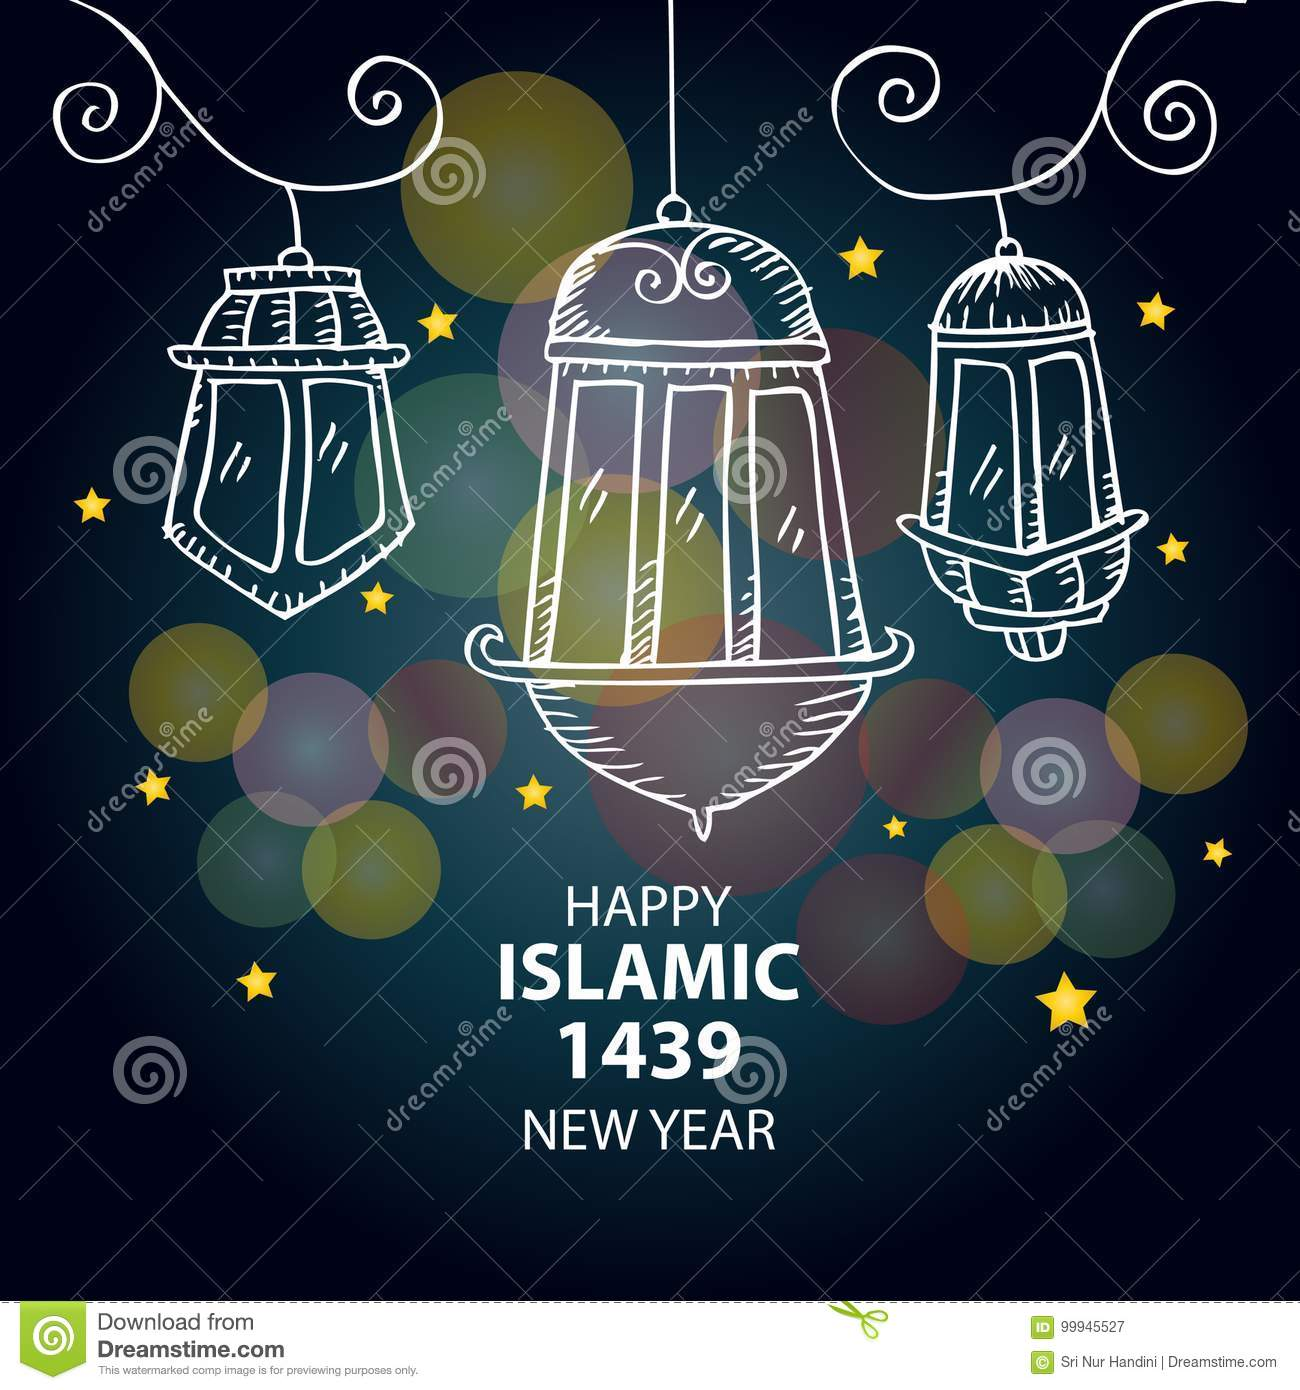 Happy Islamic New year 1439